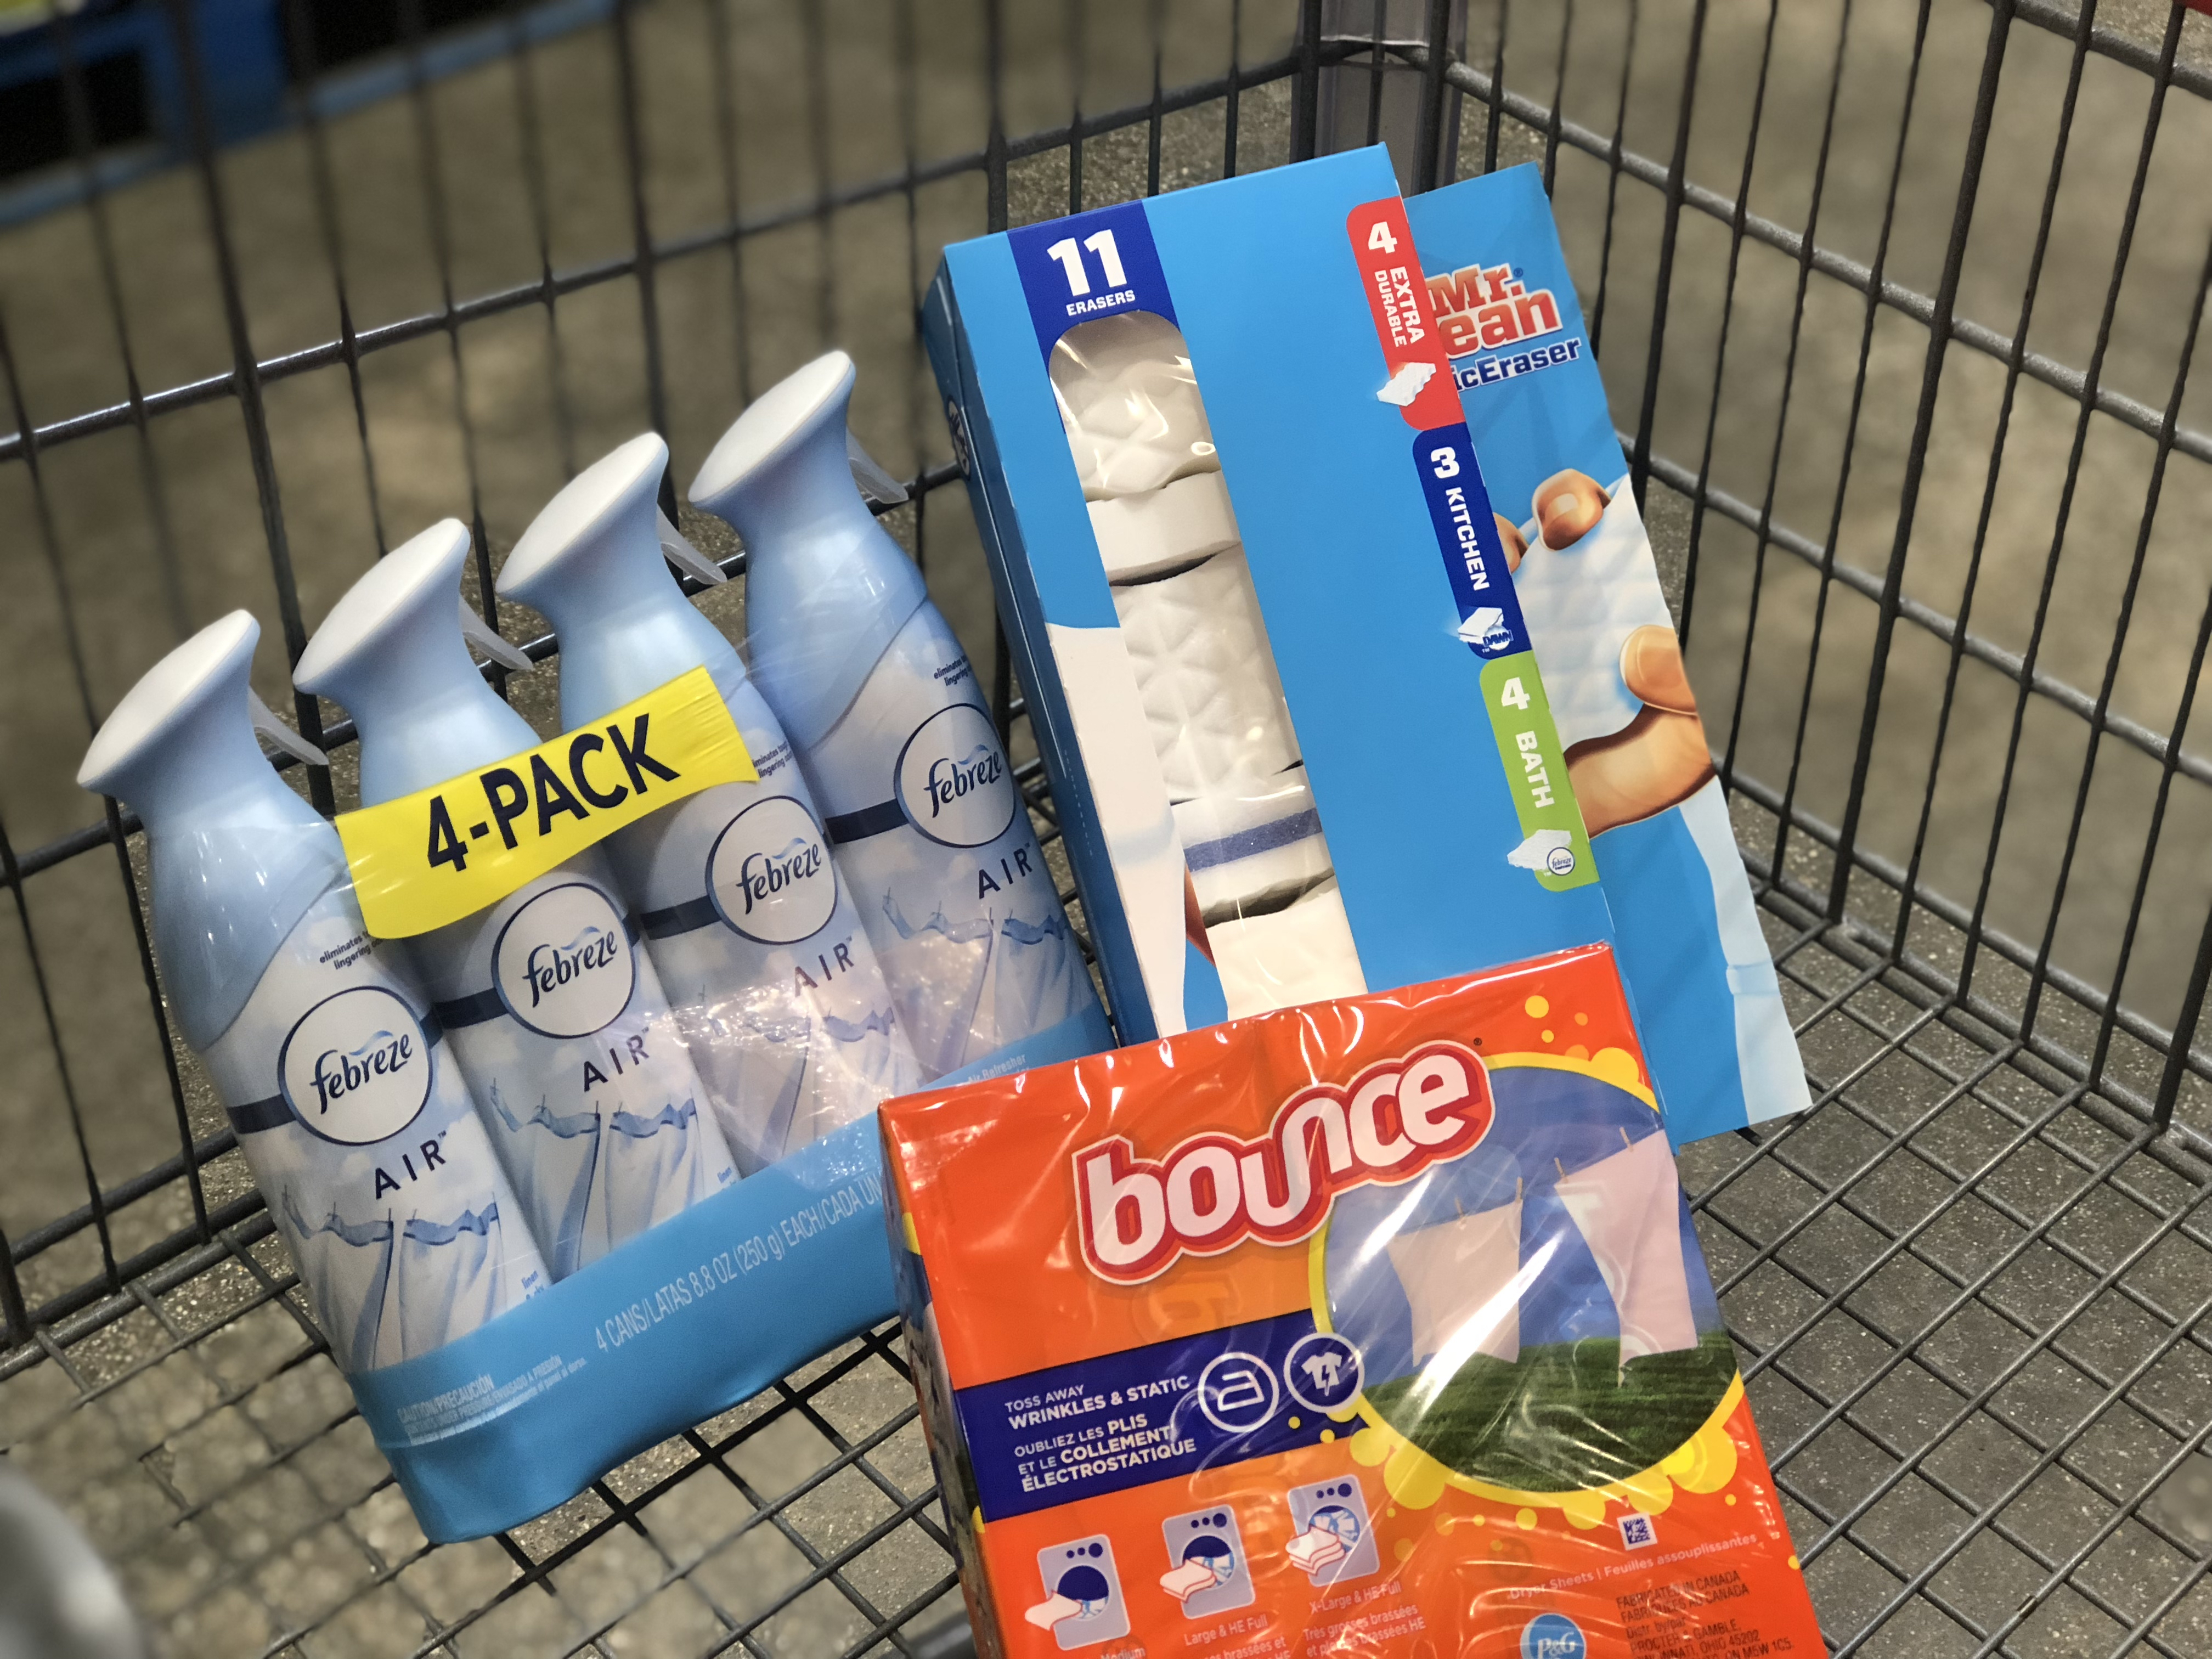 Costco Monthly Deals for September 2018 - P&G promotion at Costco